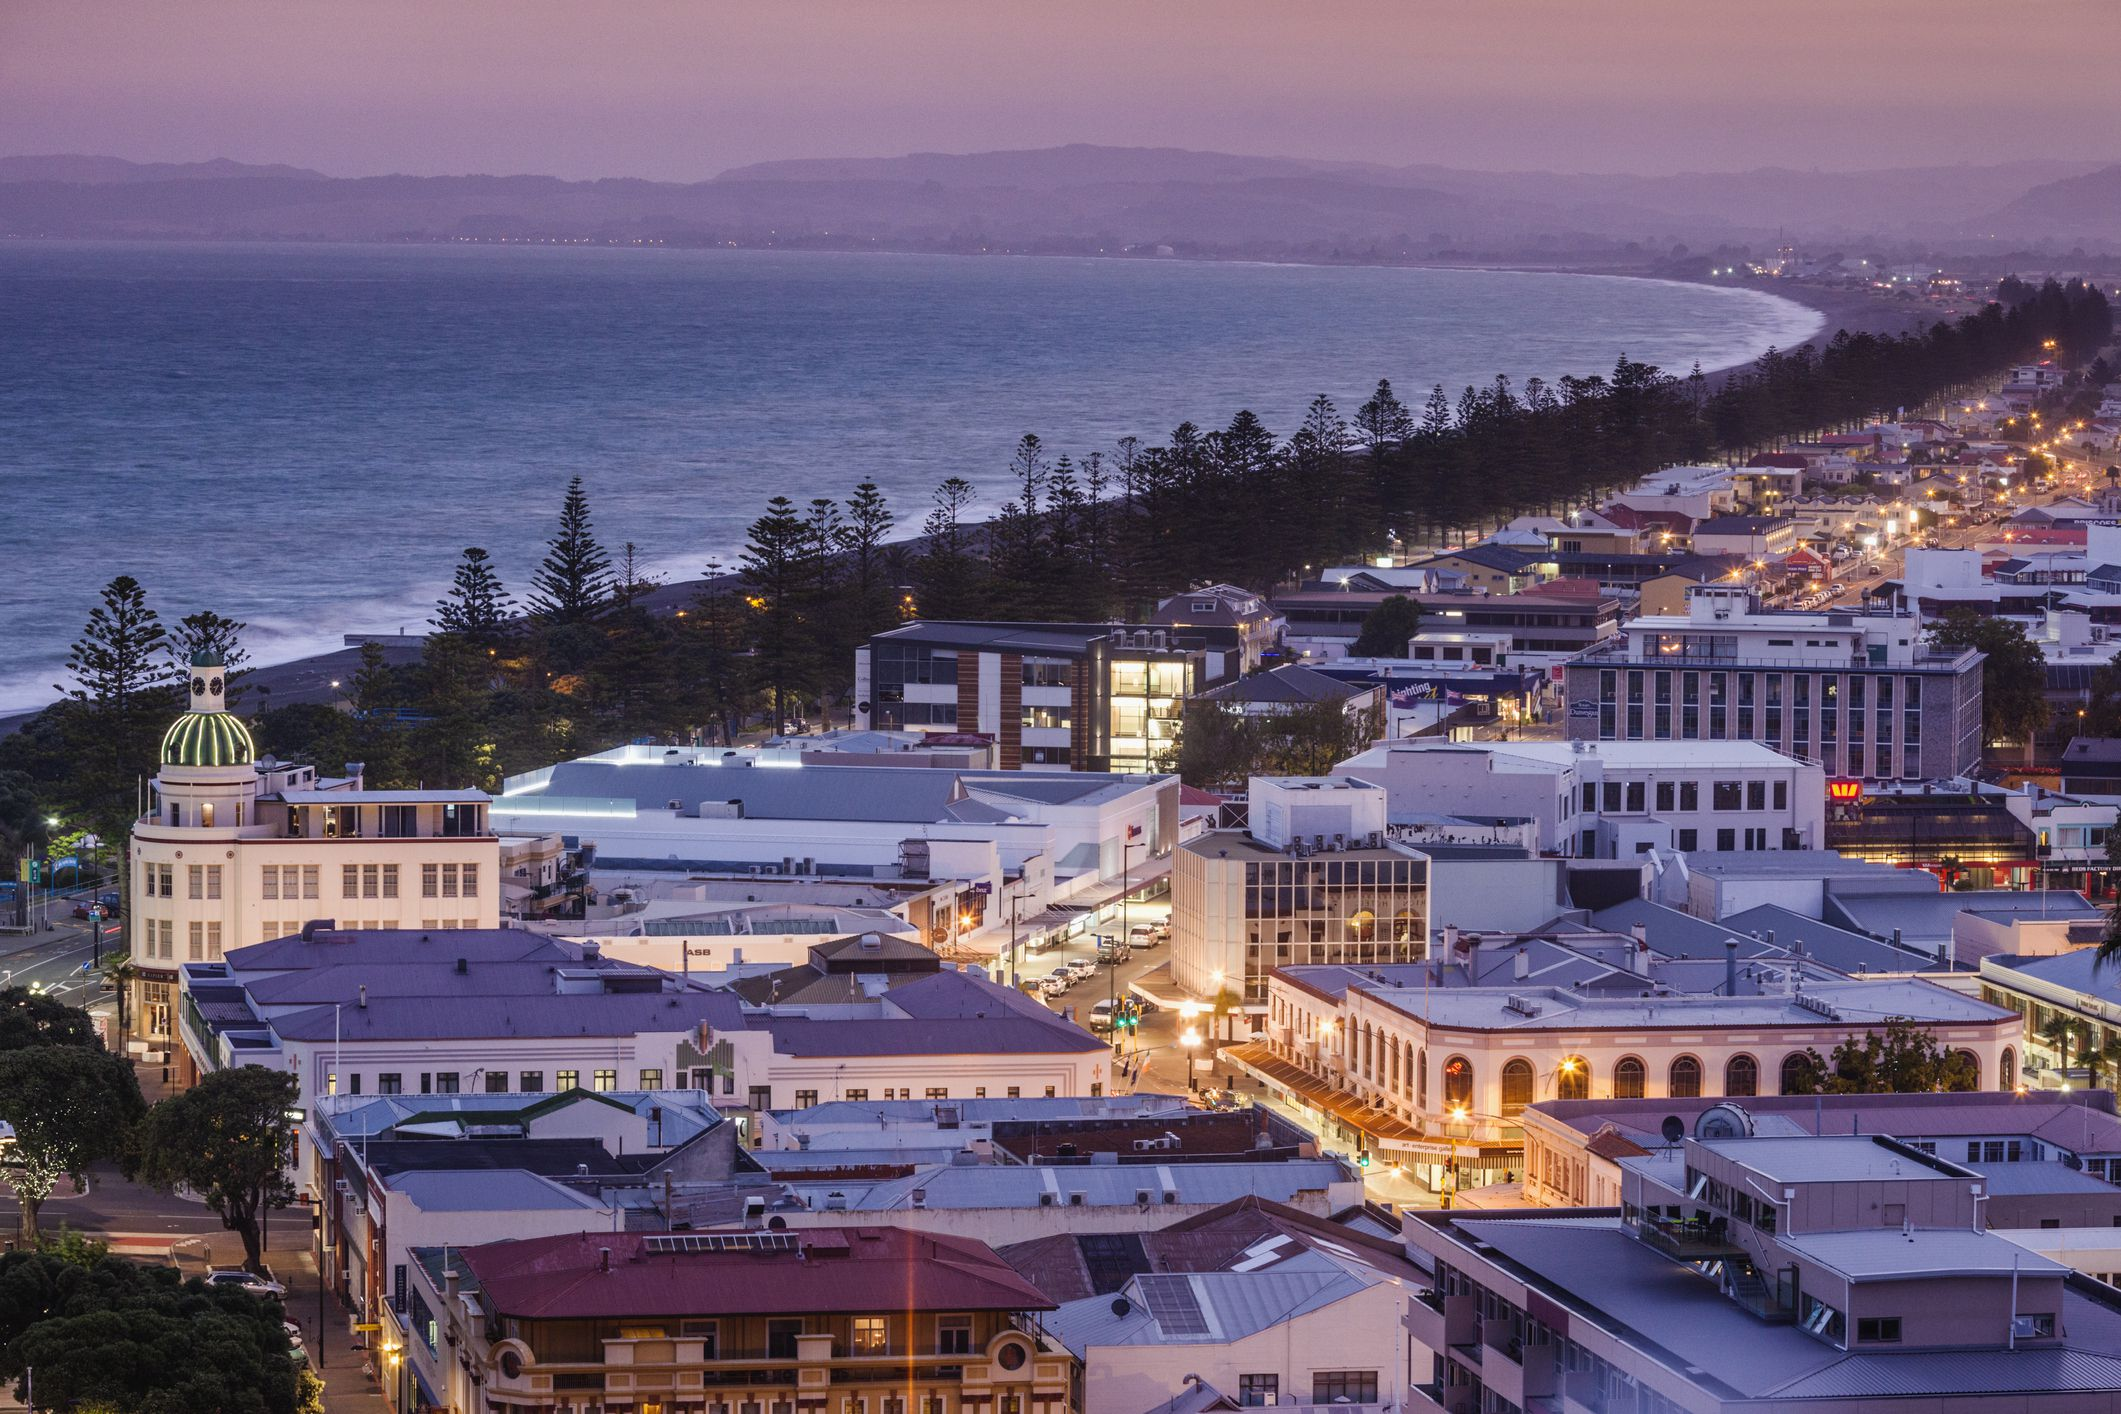 8 Things to Do in Napier, New Zealand